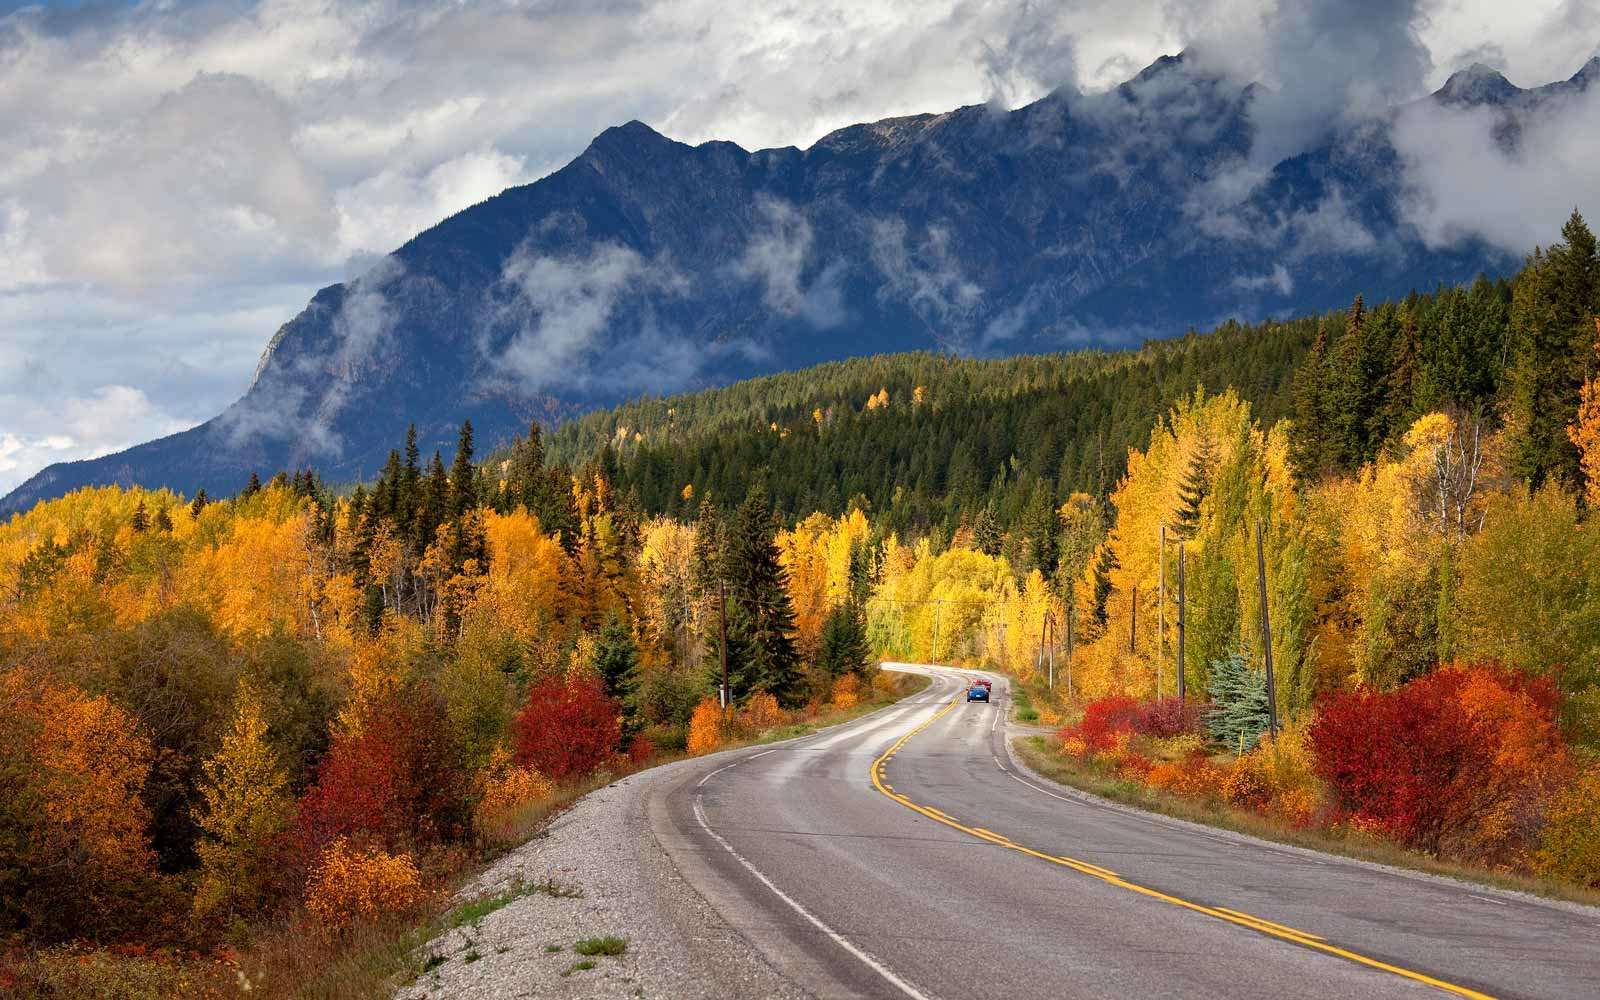 Fall colors along Canadian Hwy 1 into Golden, BC